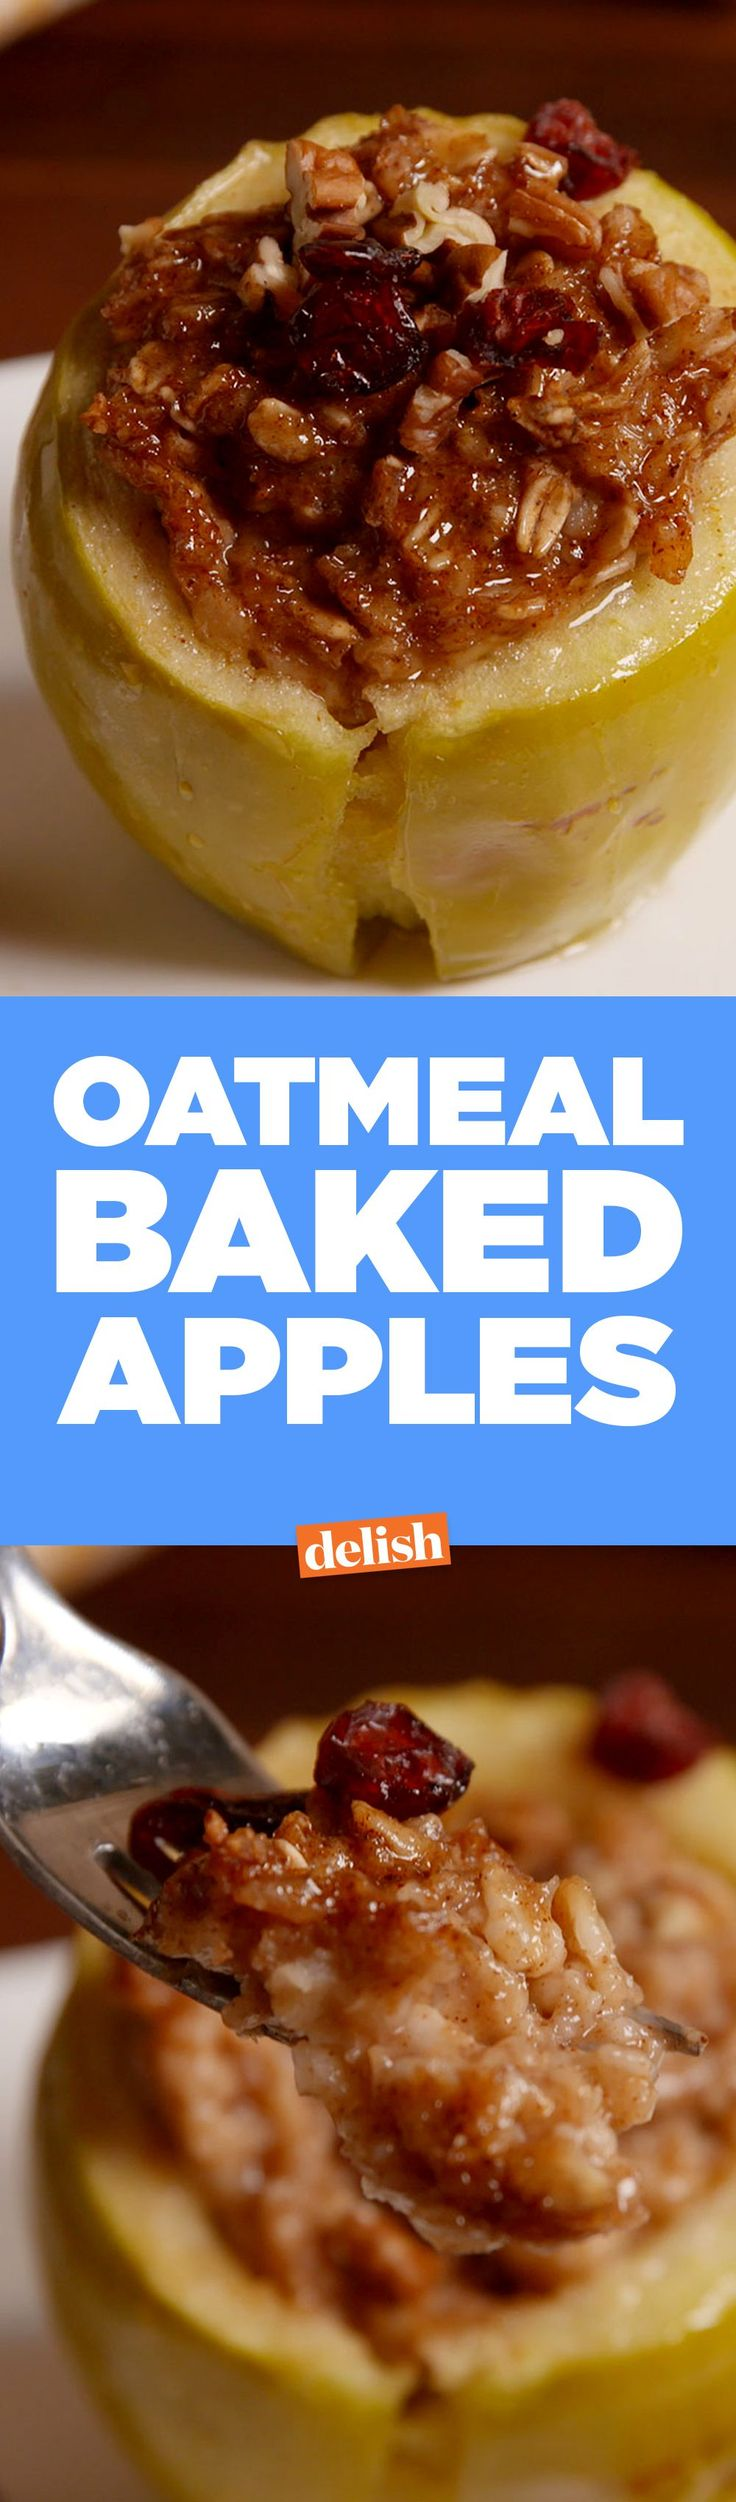 These Oatmeal Baked Apples are the healthy breakfast you've always been looking for. Get the recipe from Delish.com.